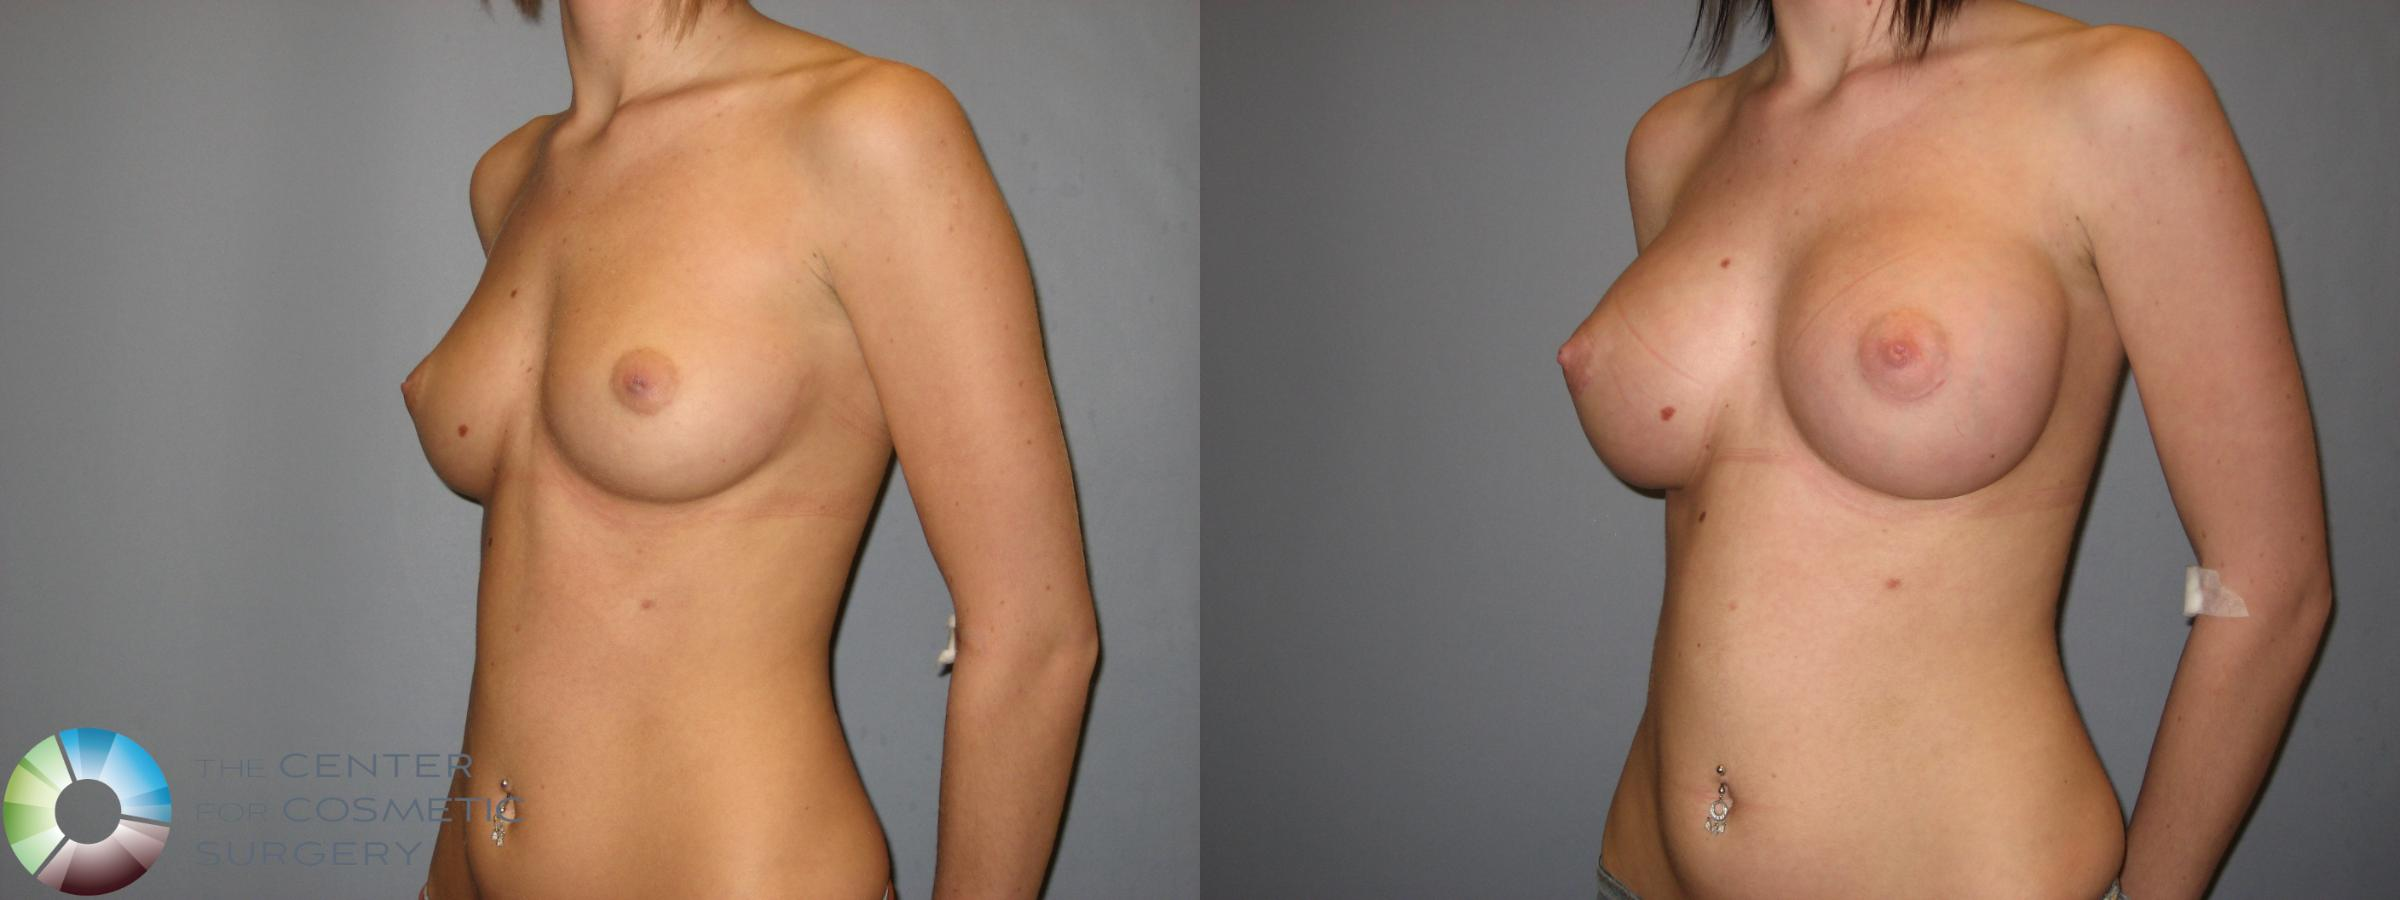 Breast Augmentation Case 177 Before & After View #2 | Golden, CO | The Center for Cosmetic Surgery